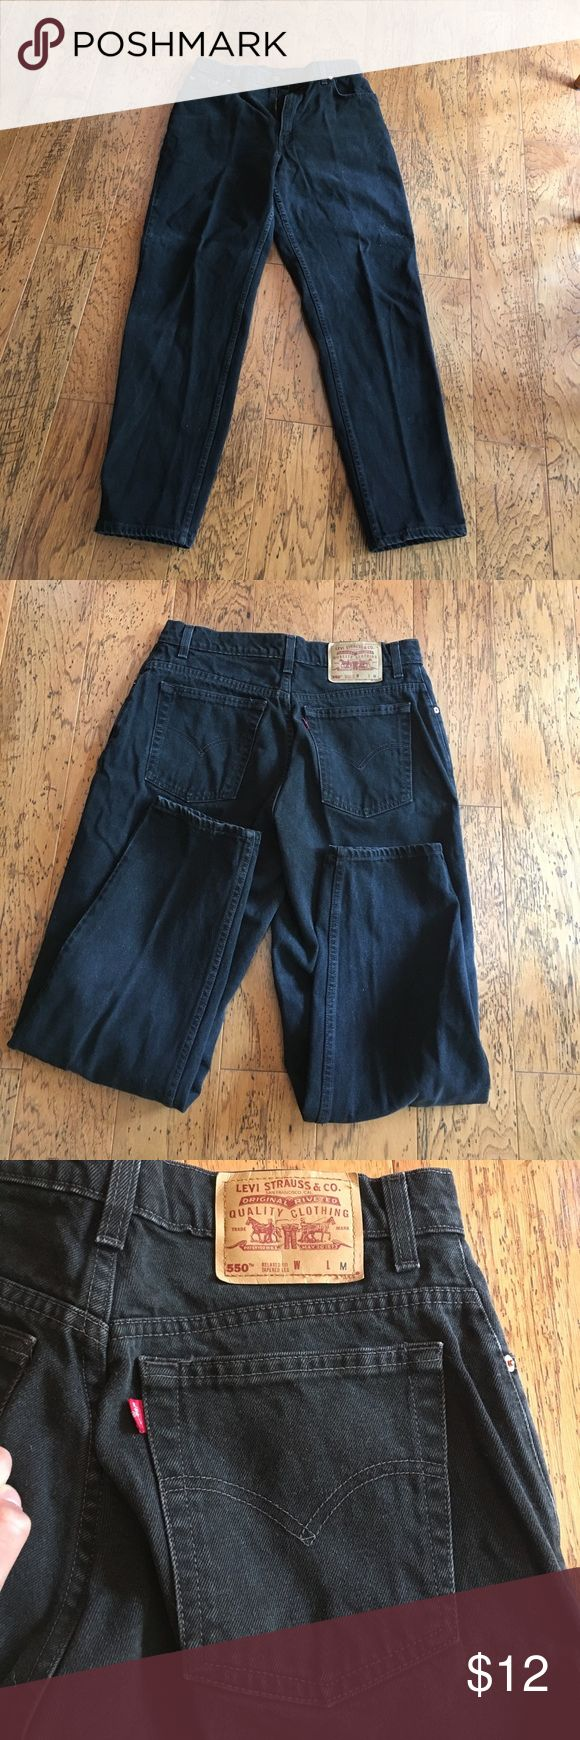 Red Label Black Levi Jeans- RARE In good condition- these red label black Levi's are always in style! As seen in last picture there are a few white specks on one of the pant legs (not noticeable) Levi's Jeans